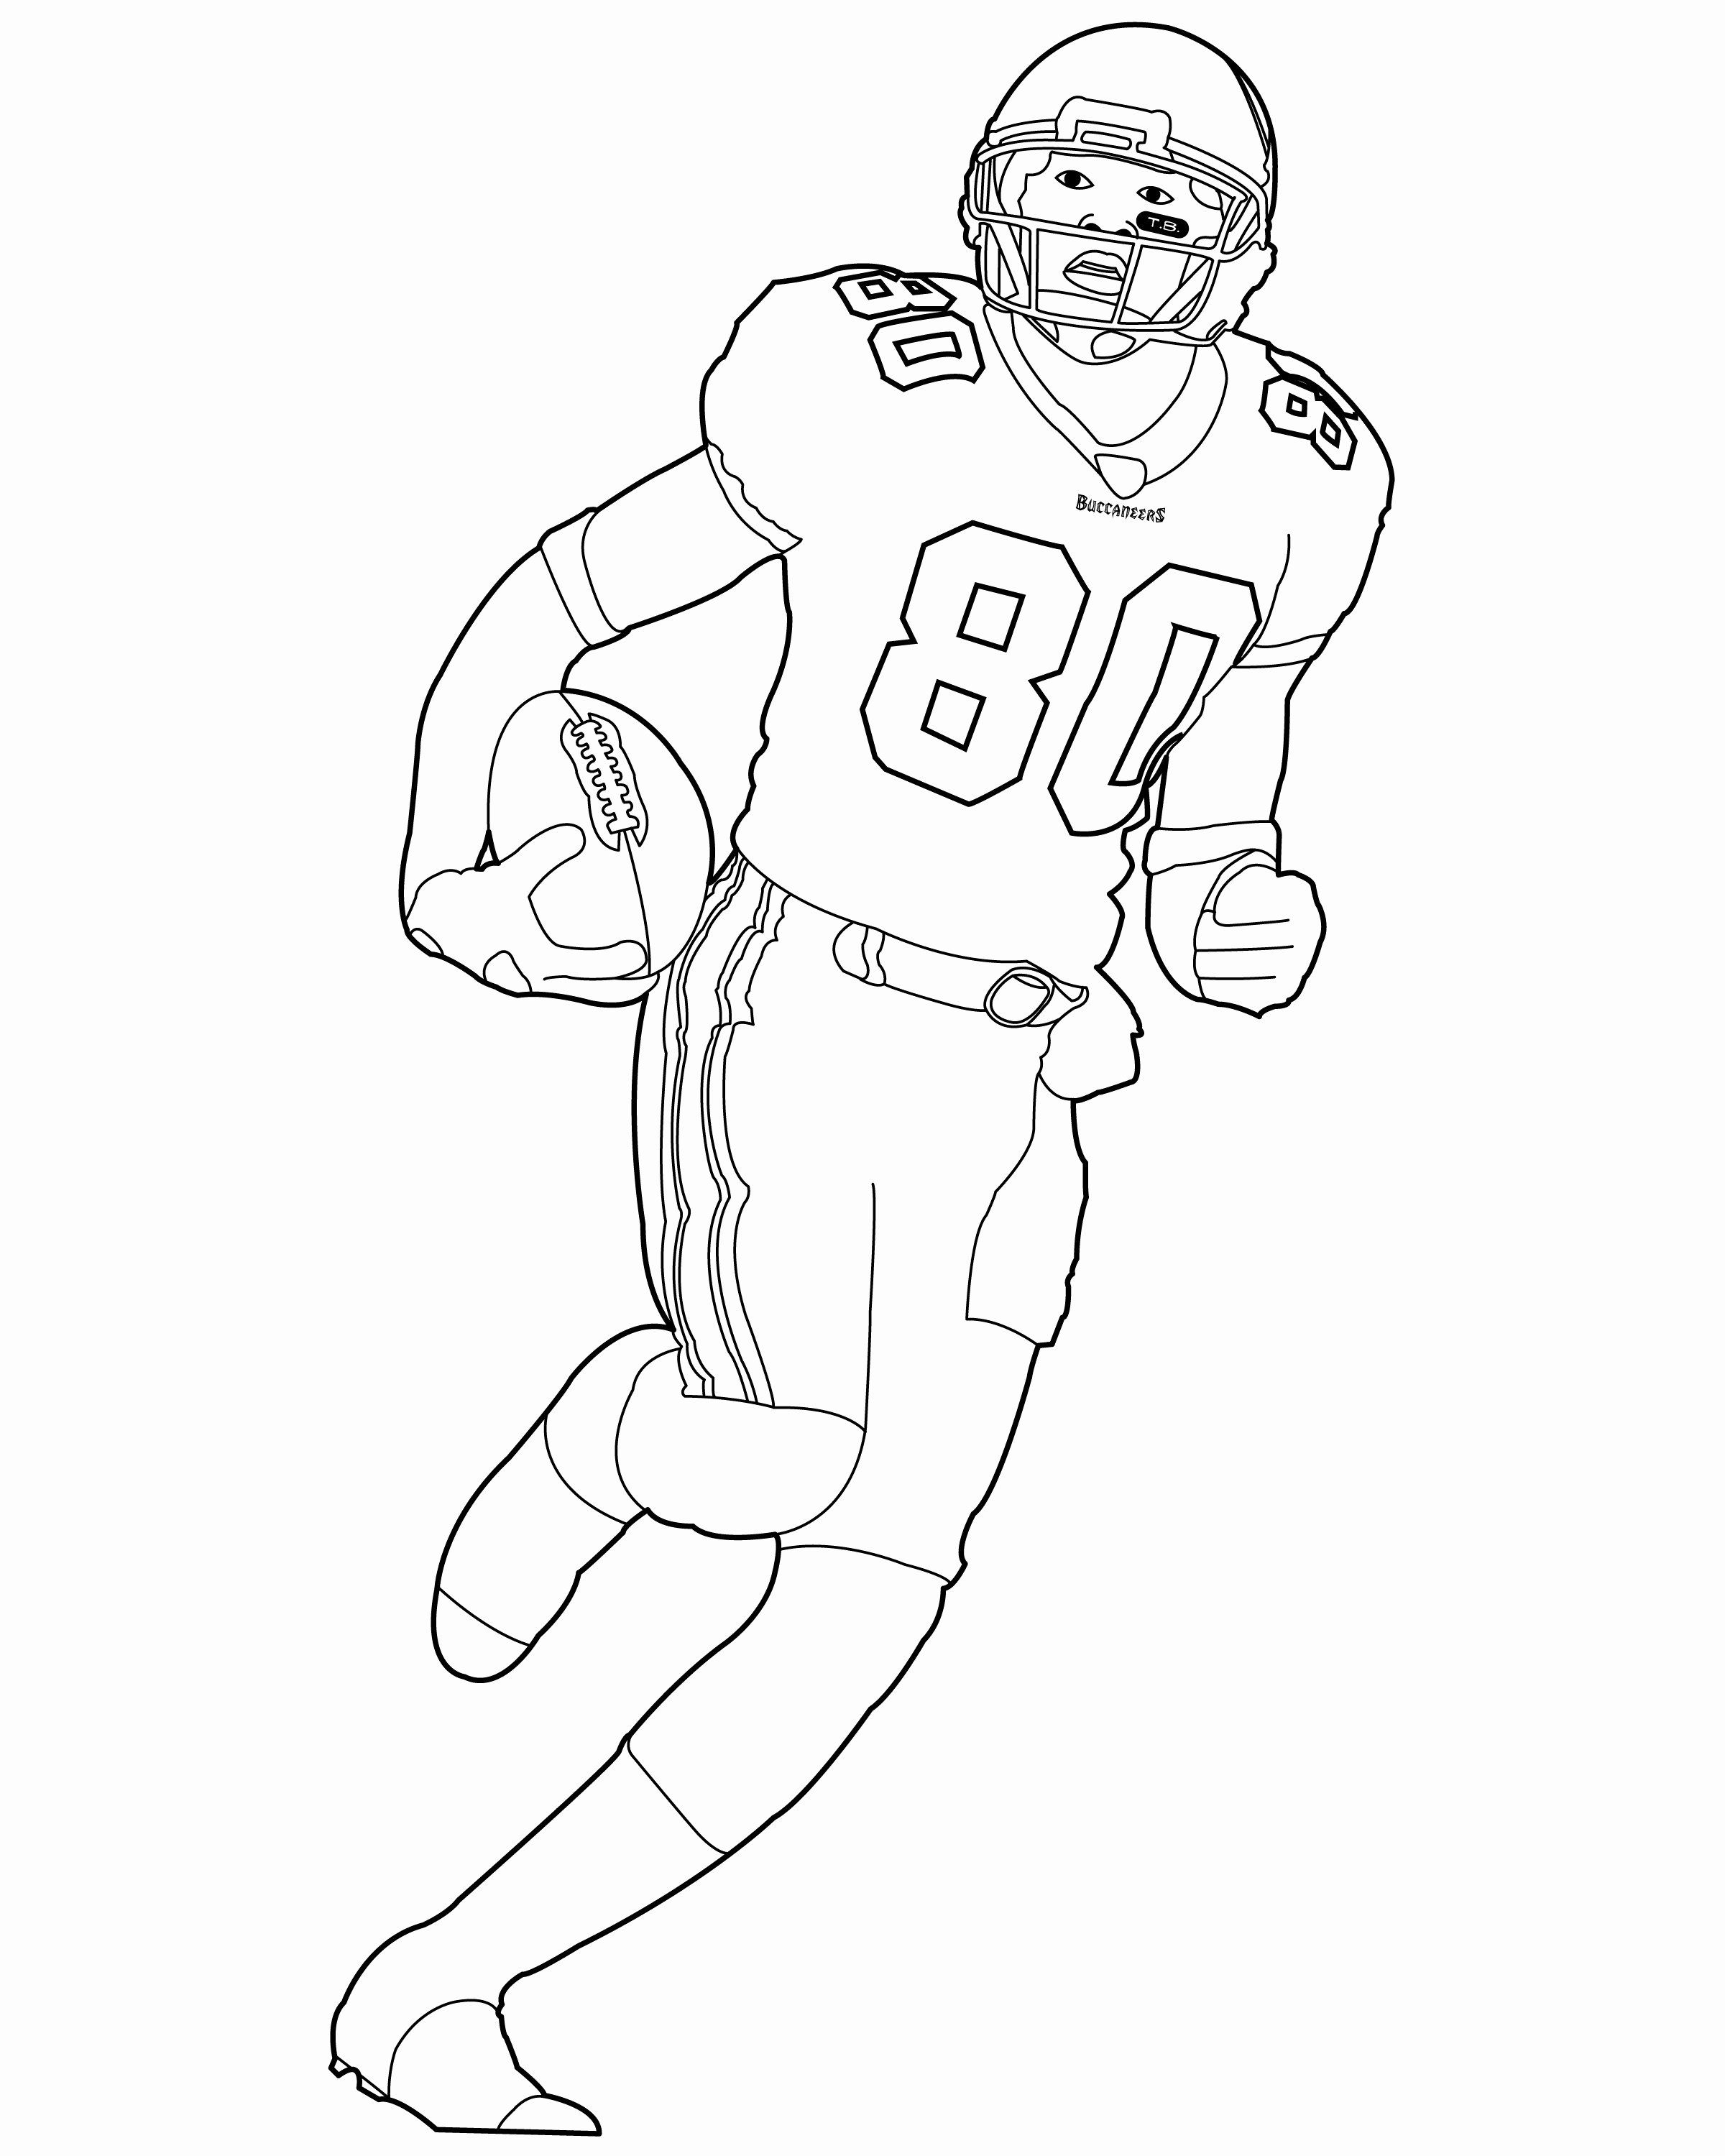 Coloring Pages Football Player New Football Player Coloring Page Football Jersey Coloring Football Coloring Pages Sports Coloring Pages Coloring Pages To Print